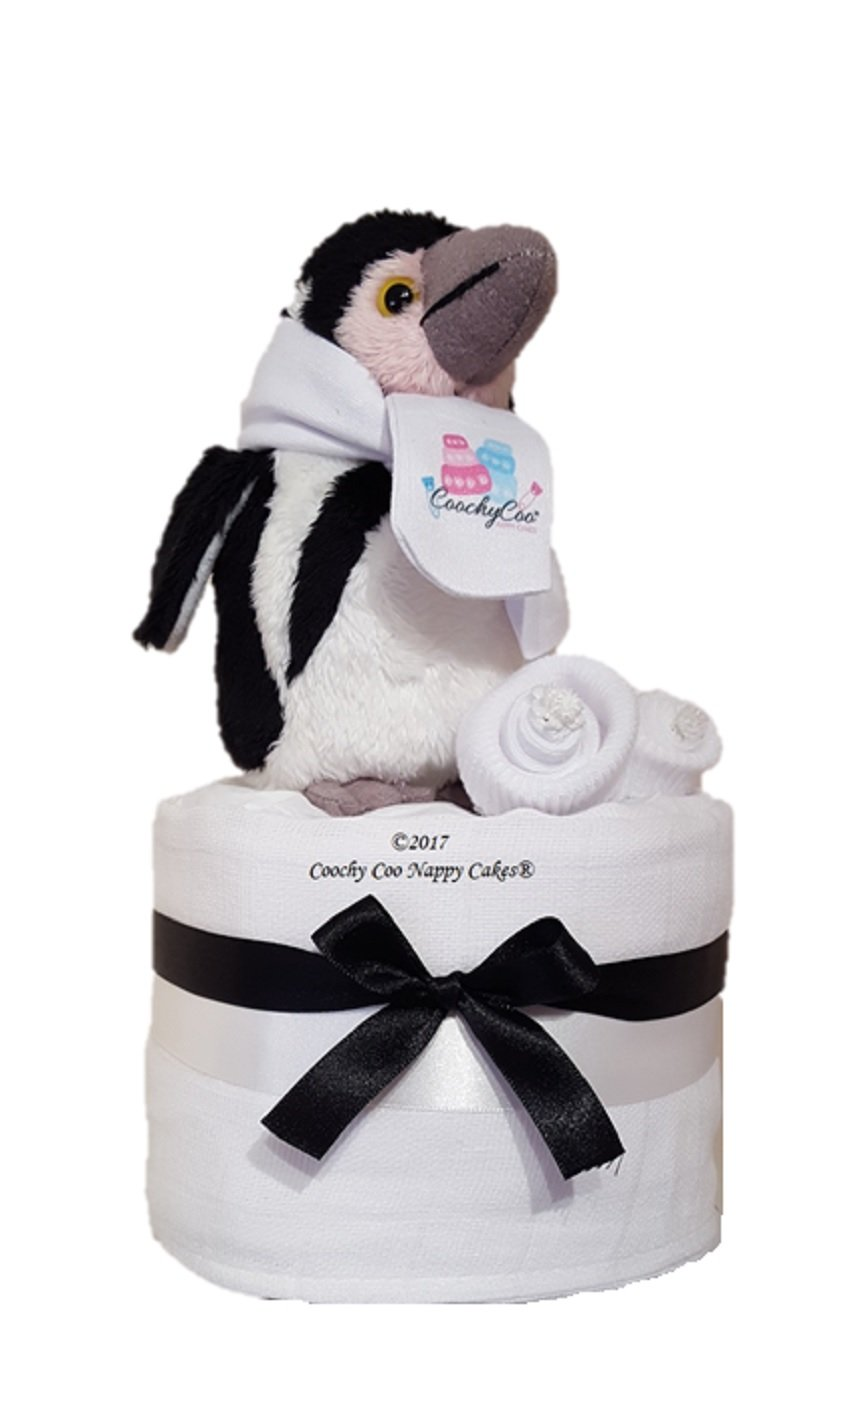 Mini Penguin Unisex Nappy Cake Baby Gift - FAST AND FREE Delivery Coochy Coo Nappy Cakes Ltd®